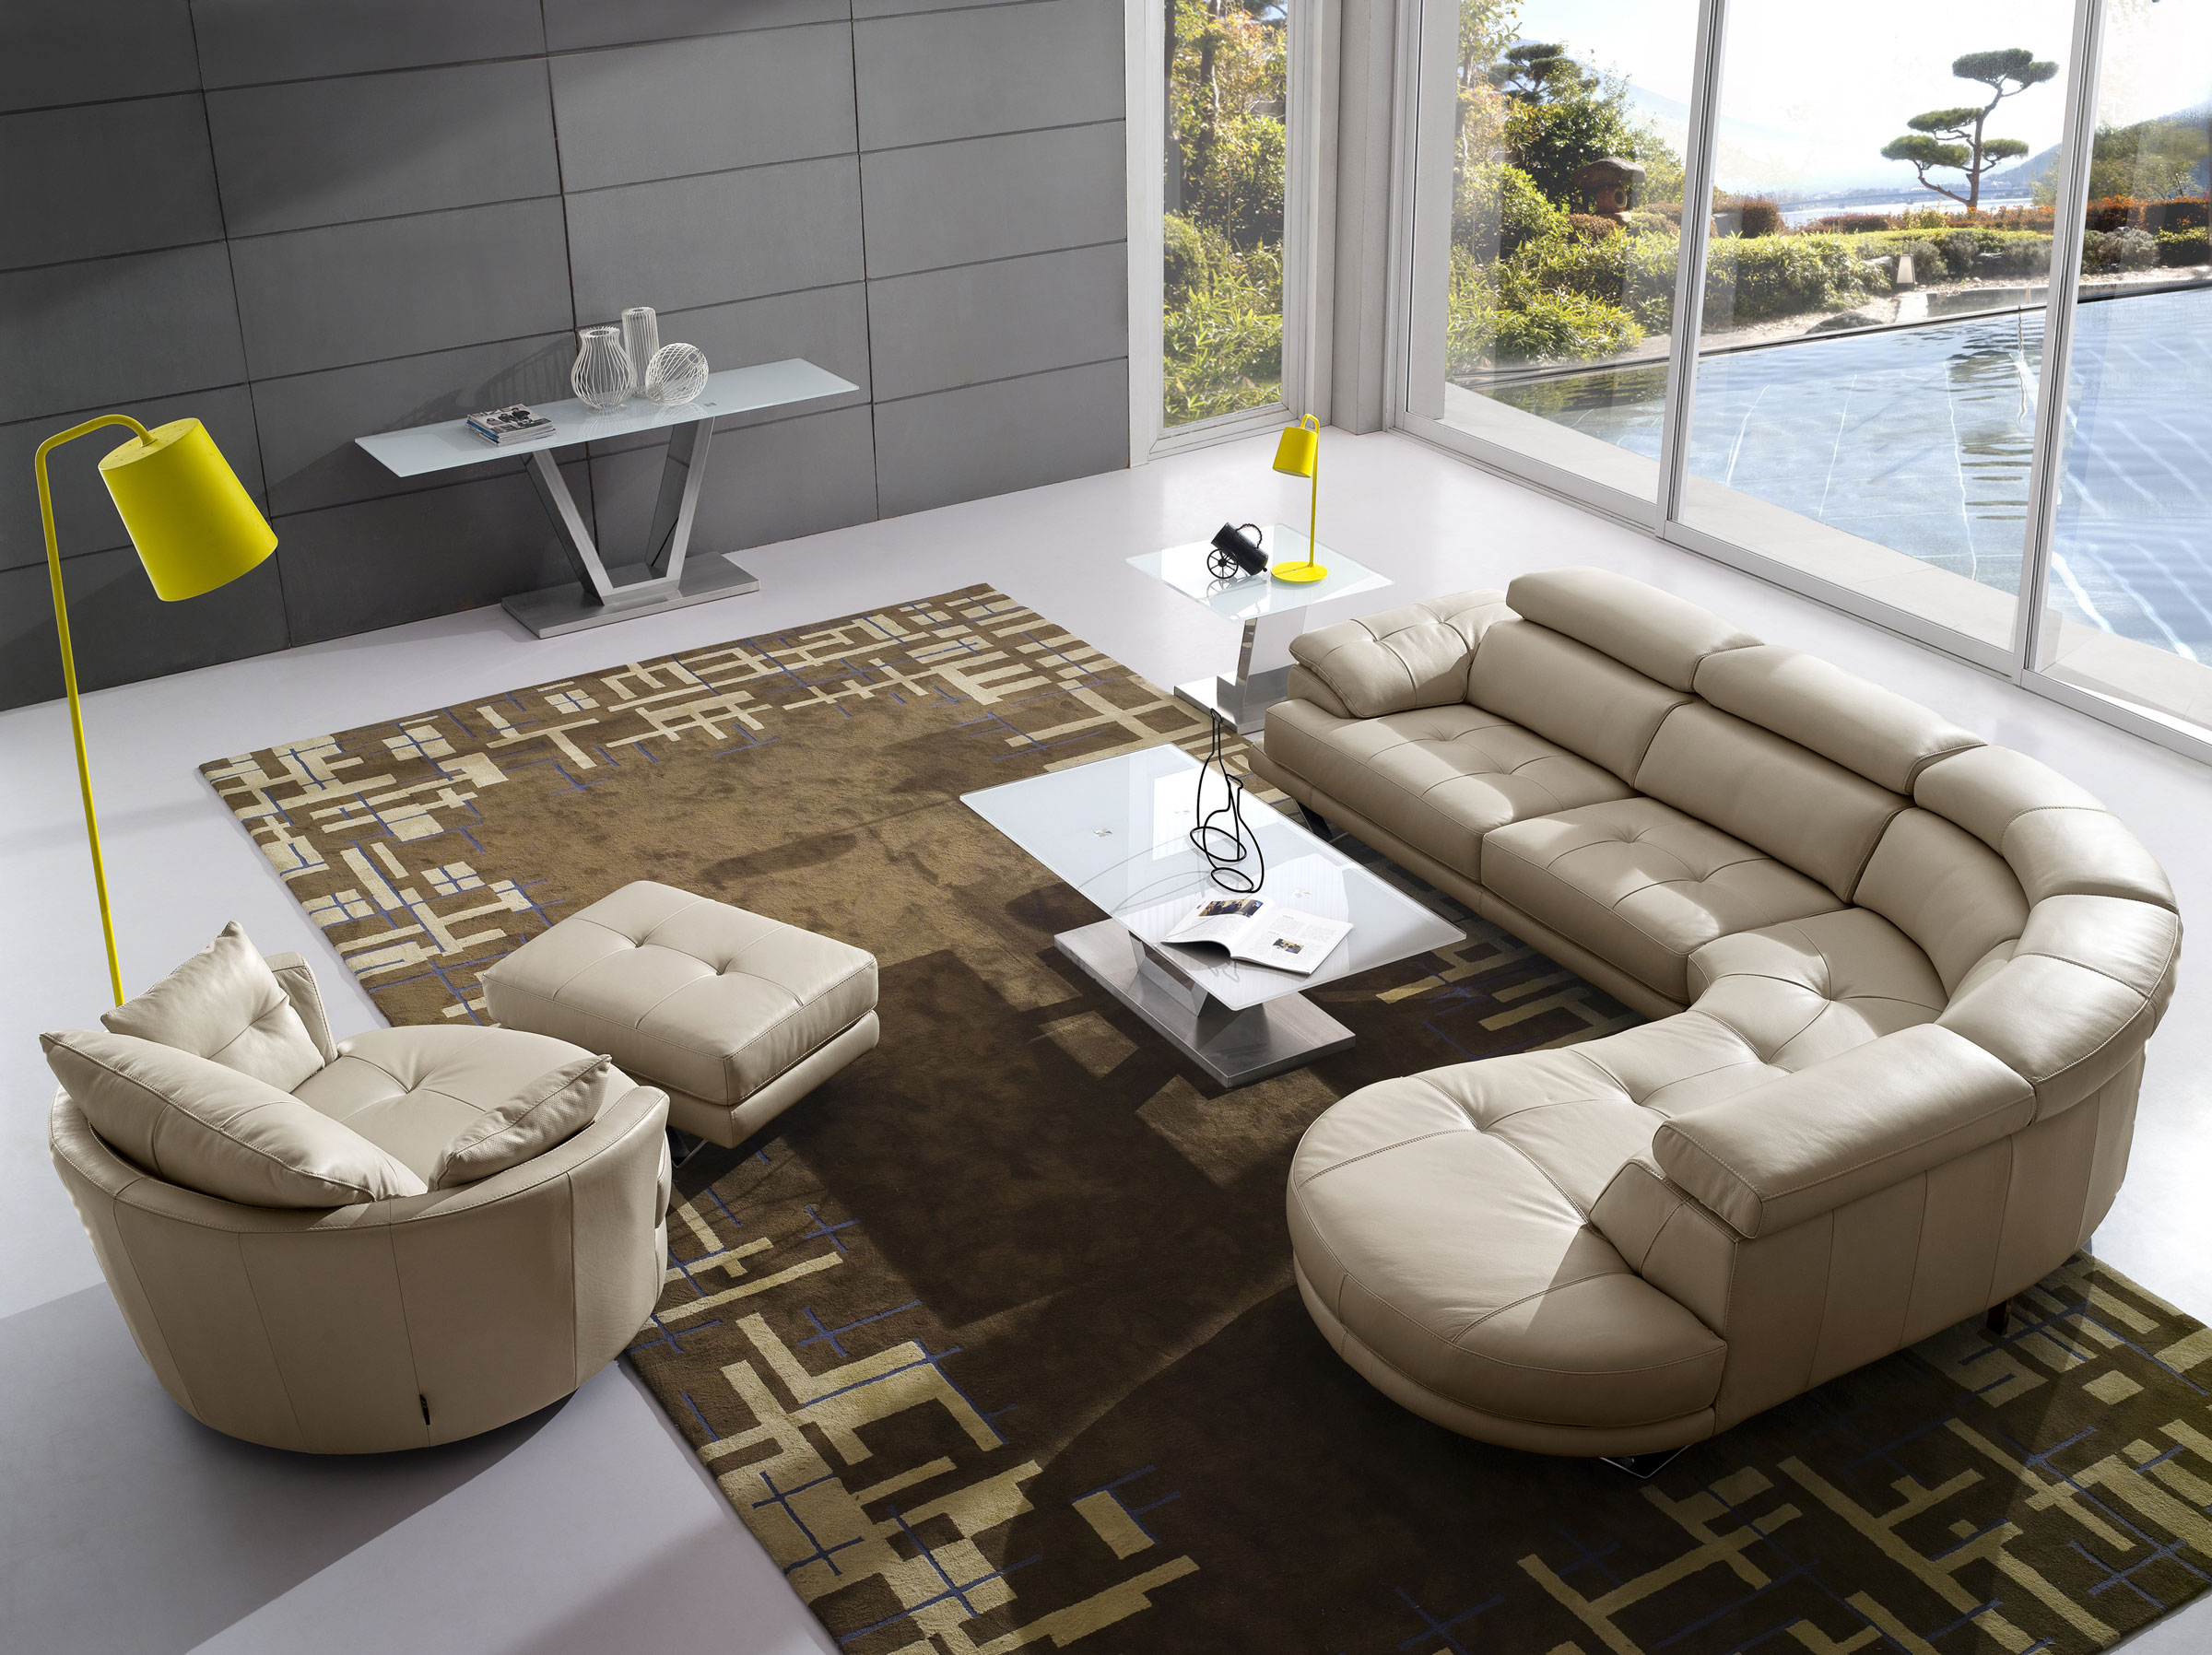 curved modular sofa australia average cost of cleaning gainsville furniture store in melbourne upgrade your living room with their sierra this incredibly comfortable features a retro modern design that is perfectly